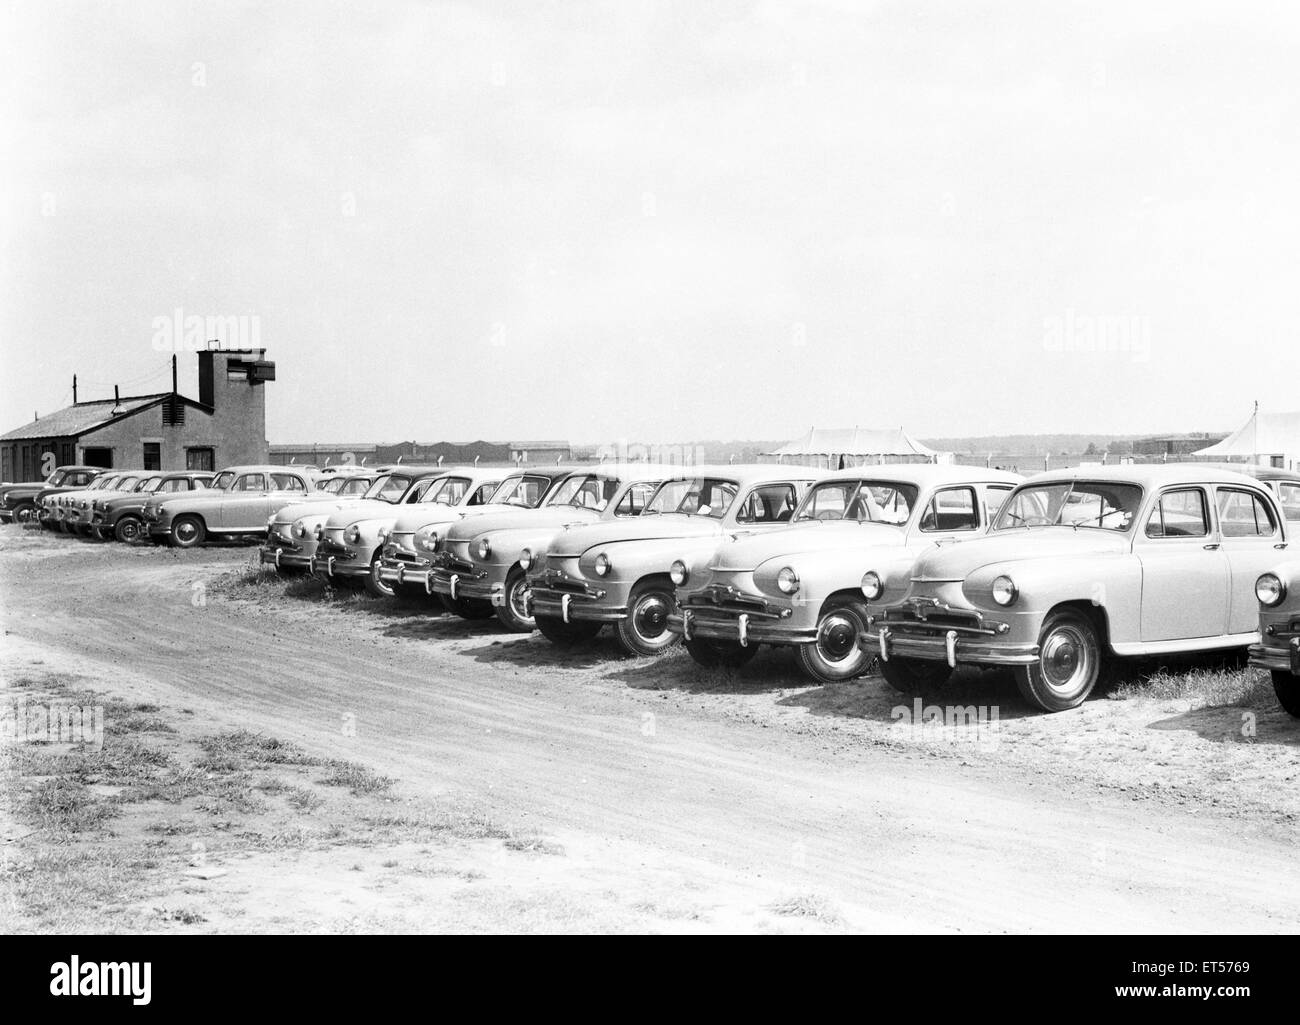 Standard Vanguard cars awaiting delivery seen here at Baginton Airport June 1954 - Stock Image